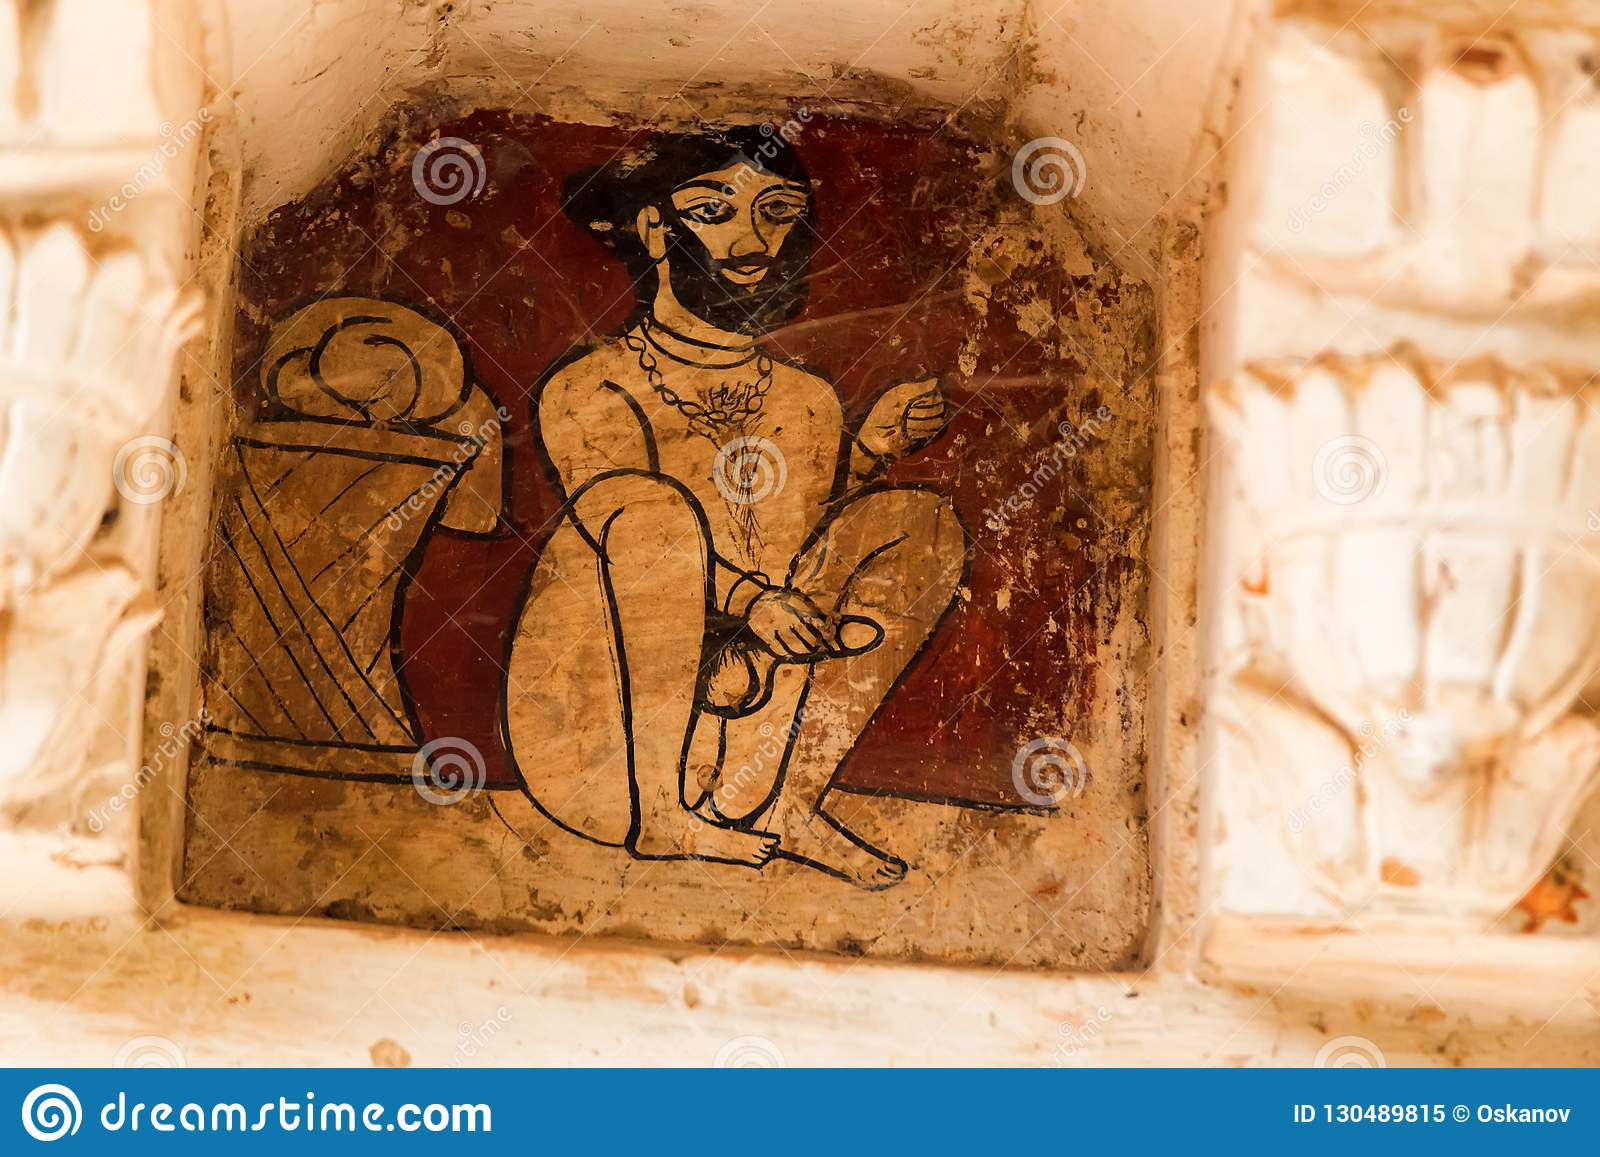 JAIPUR, INDIA - NOVEMBER 5, 2017: Kamasutra or ancient sex images on wall  in Indian Palace in Amber Fort. Kamasutra is an ancient Indian Hindu text  written ...